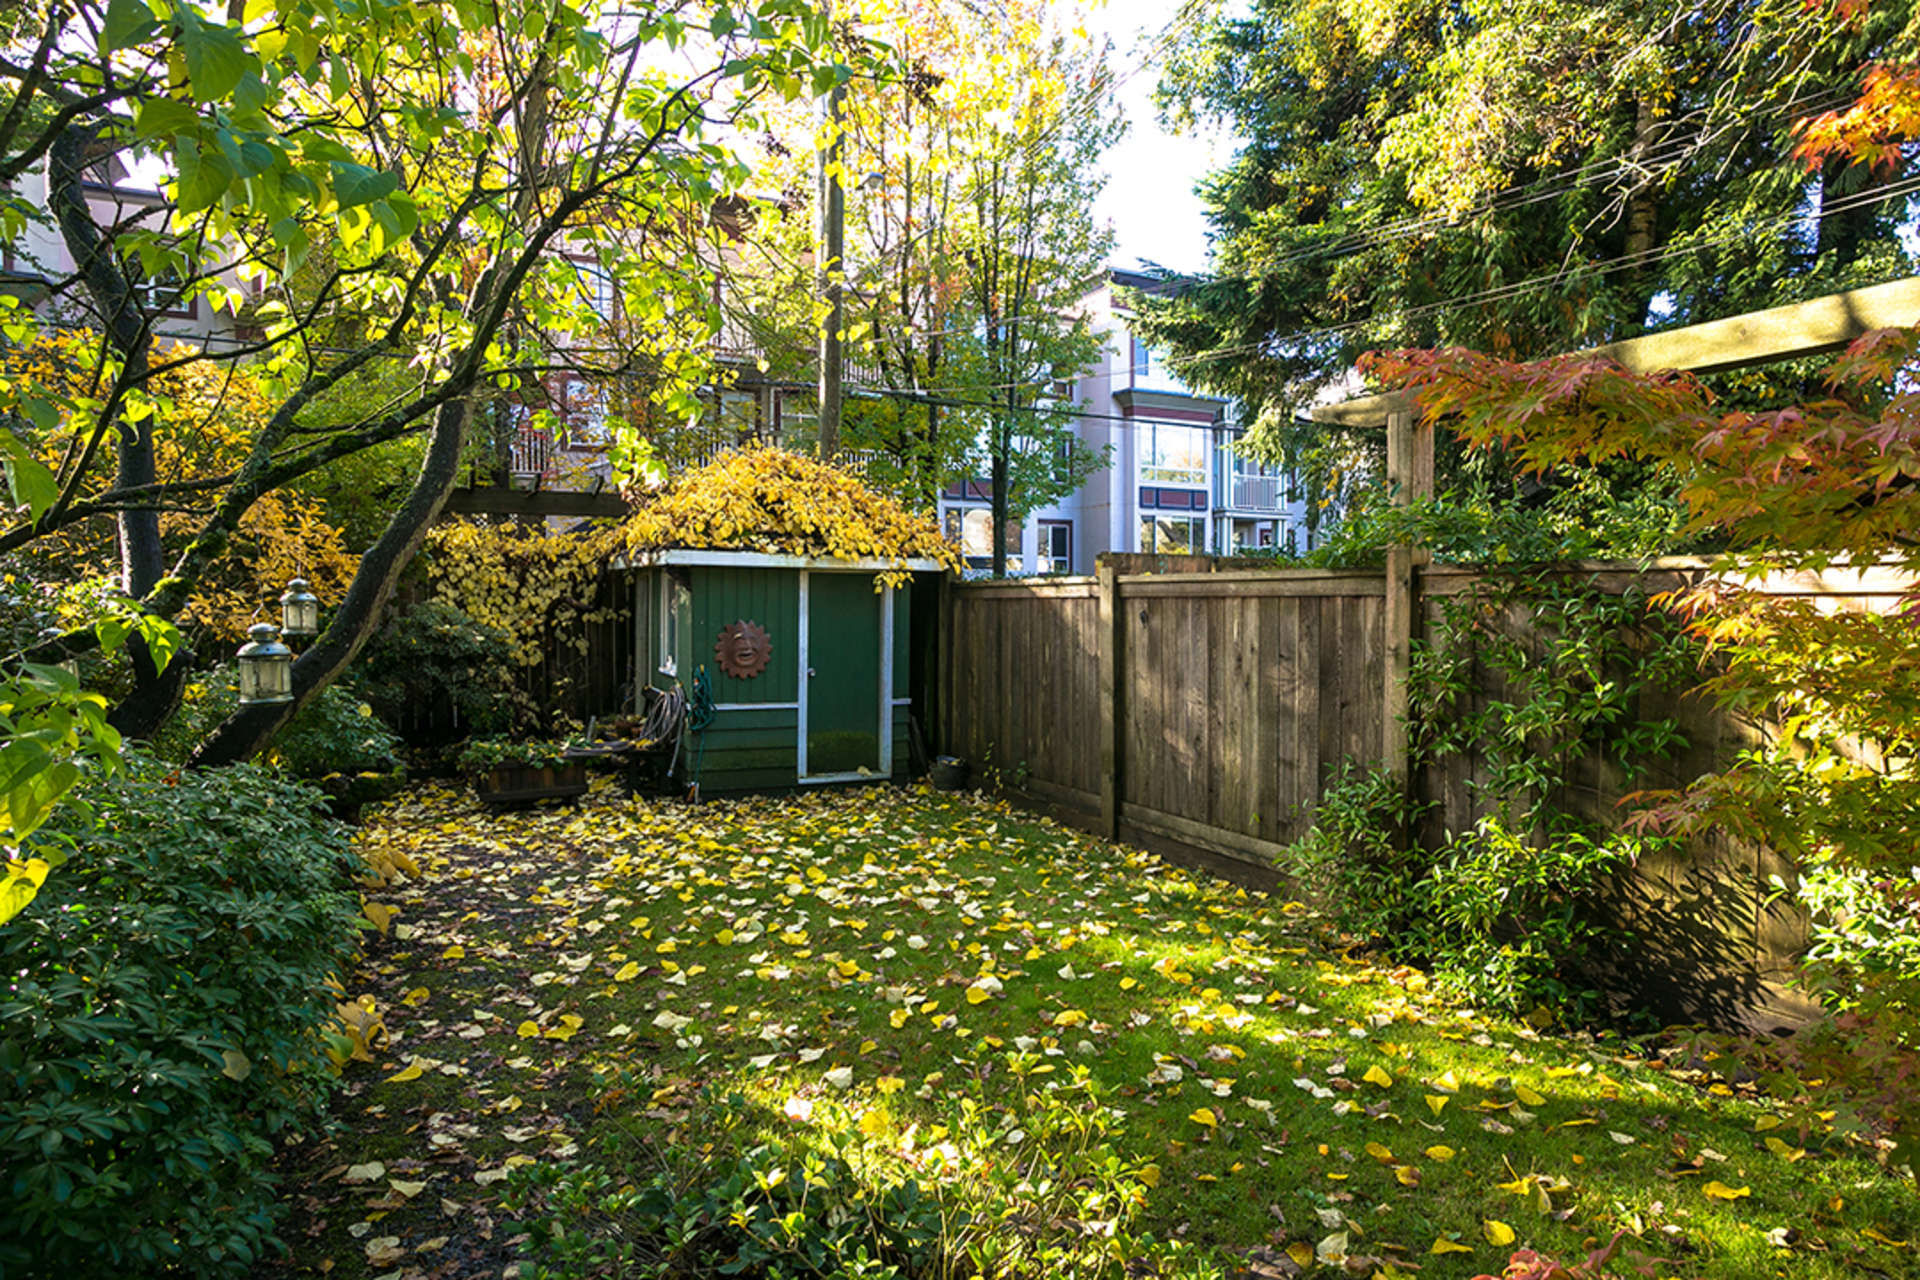 20191022-1j6a9692 at 3228 West 3rd Avenue, Kitsilano, Vancouver West